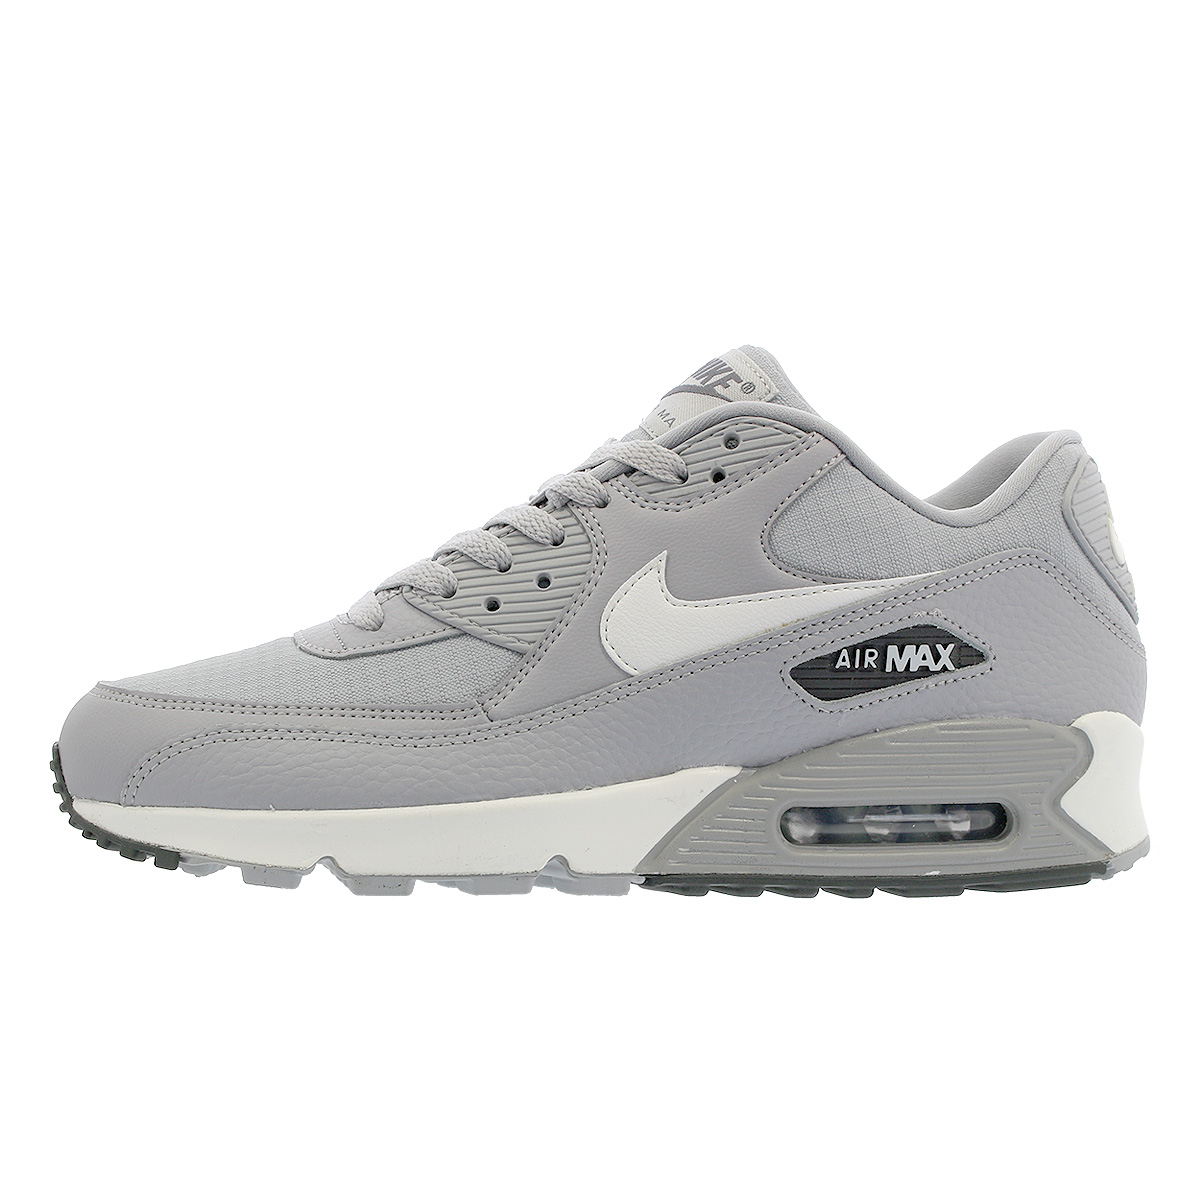 Details about Nike Air Max 90 (Wolf Grey Summit White) Running [325213 062] Wmns Sz 6 10